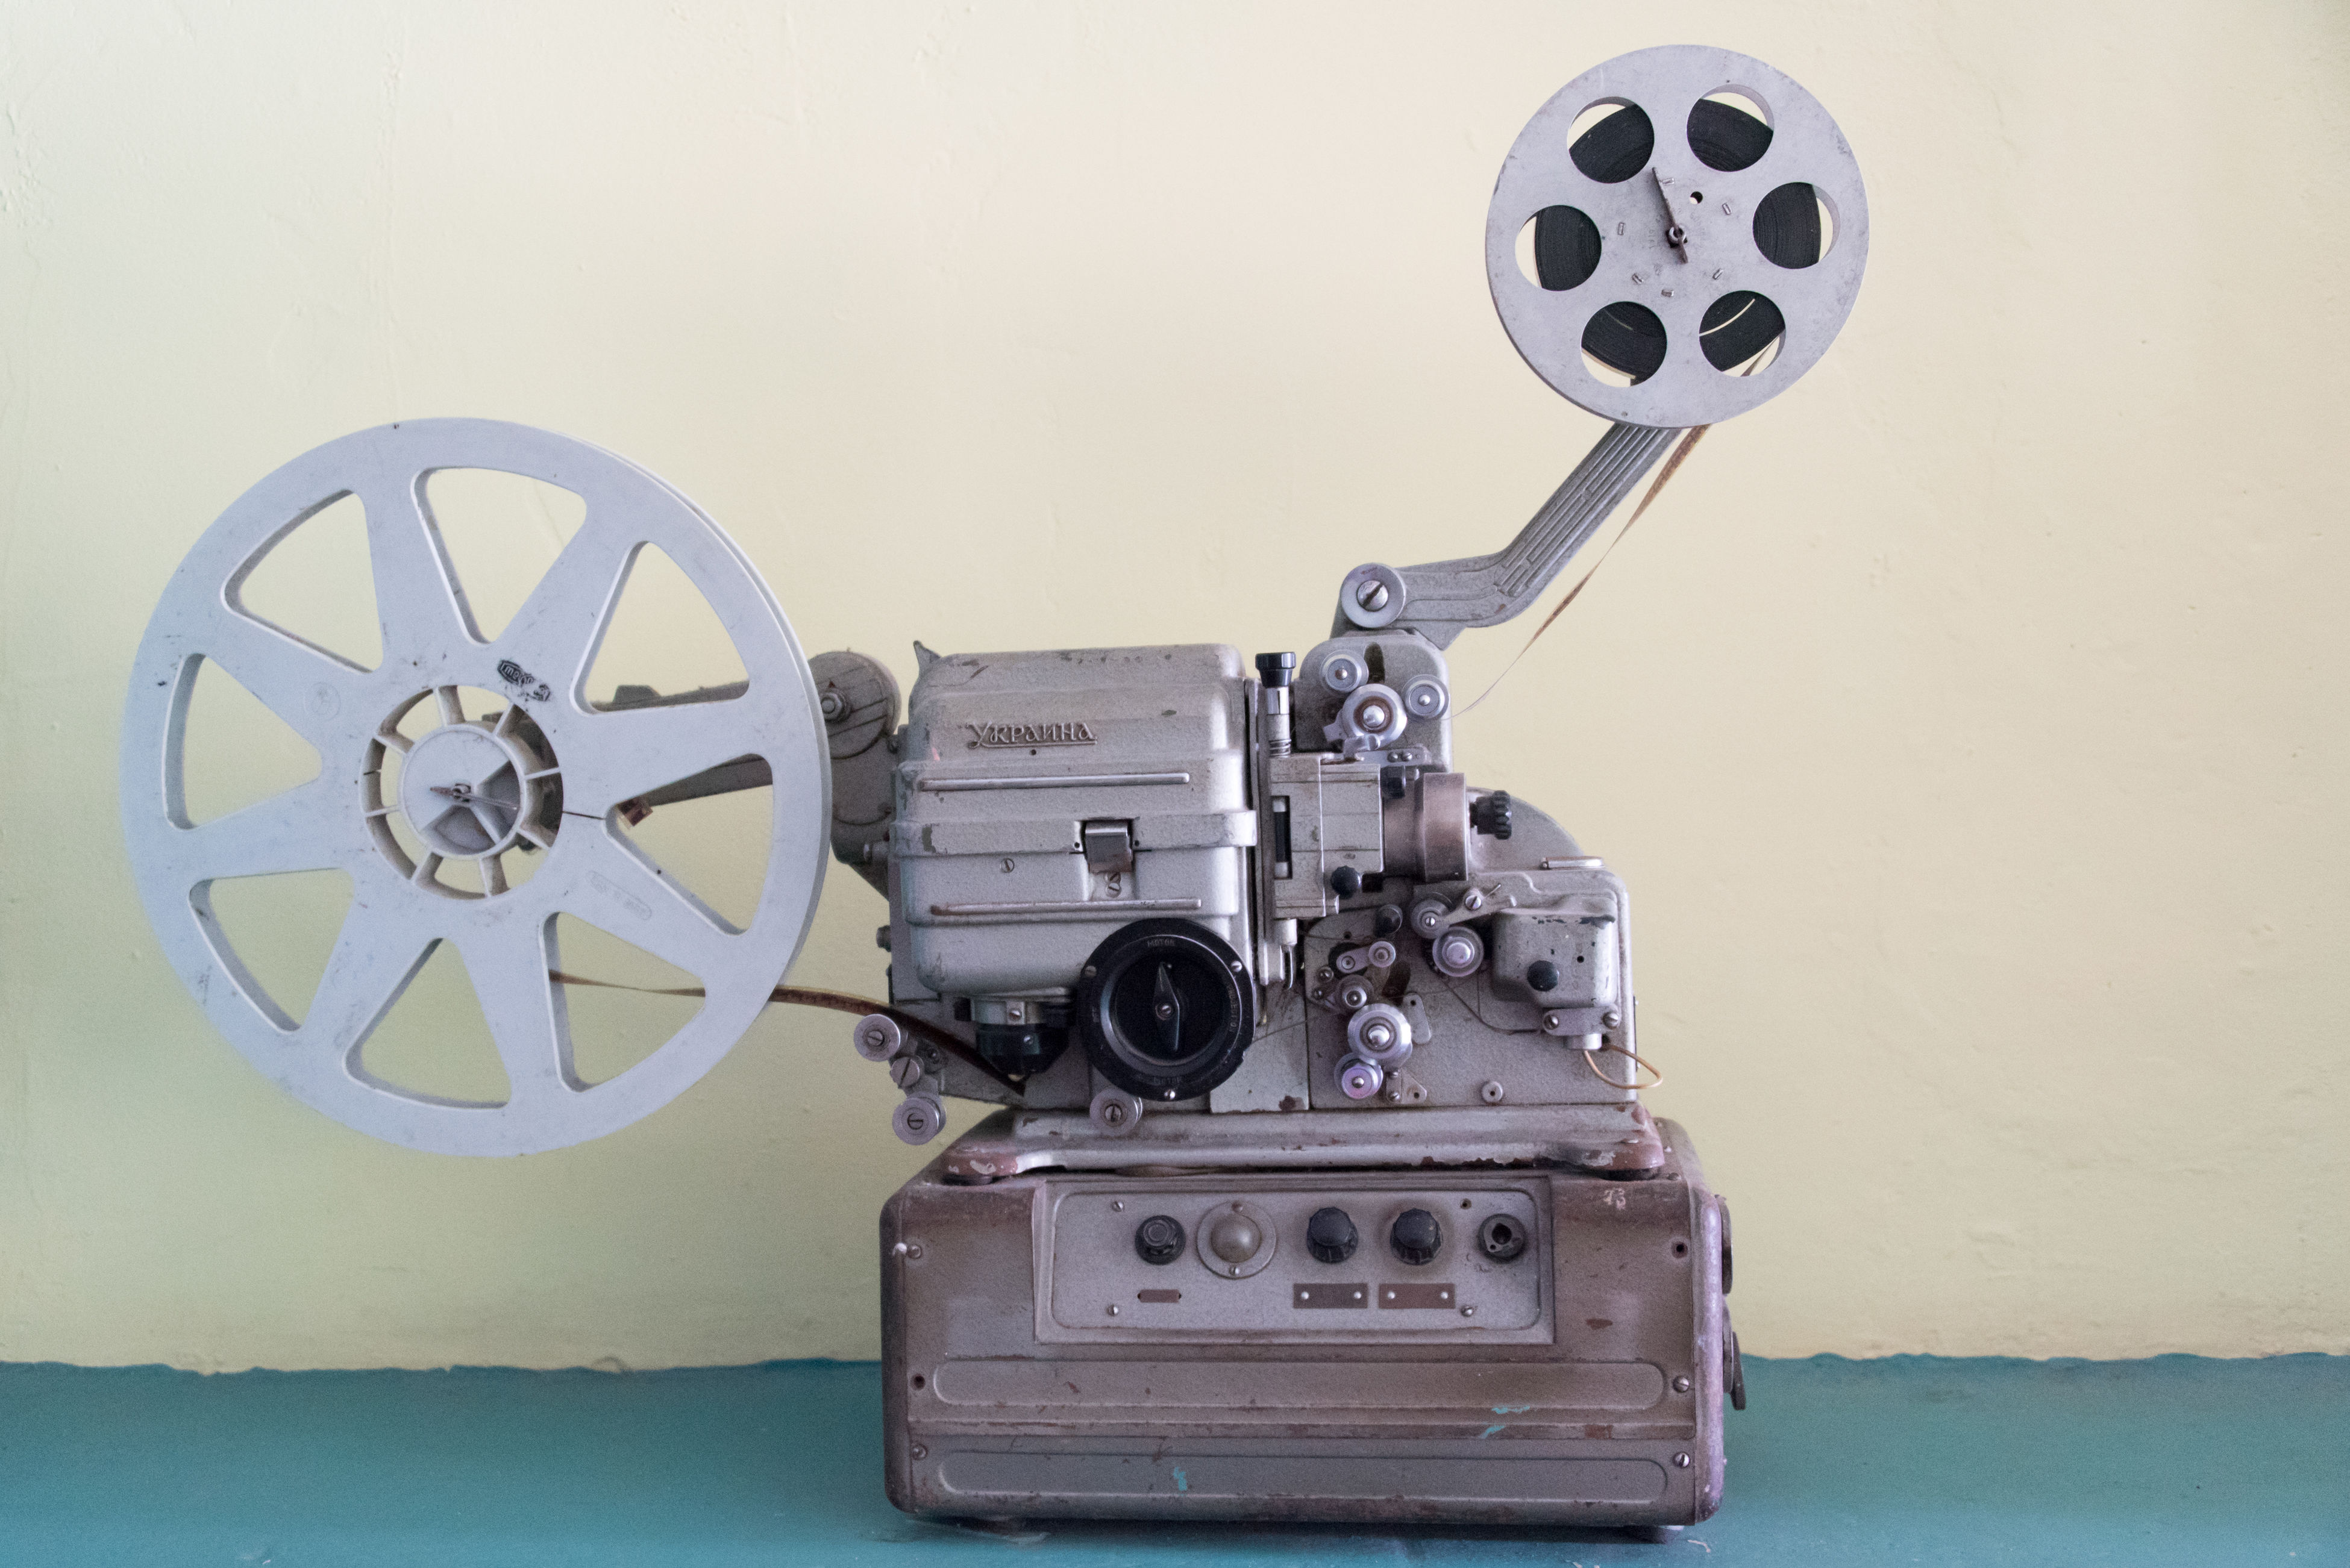 old-fashioned, antique, retro styled, indoors, no people, close-up, movie camera, film industry, day